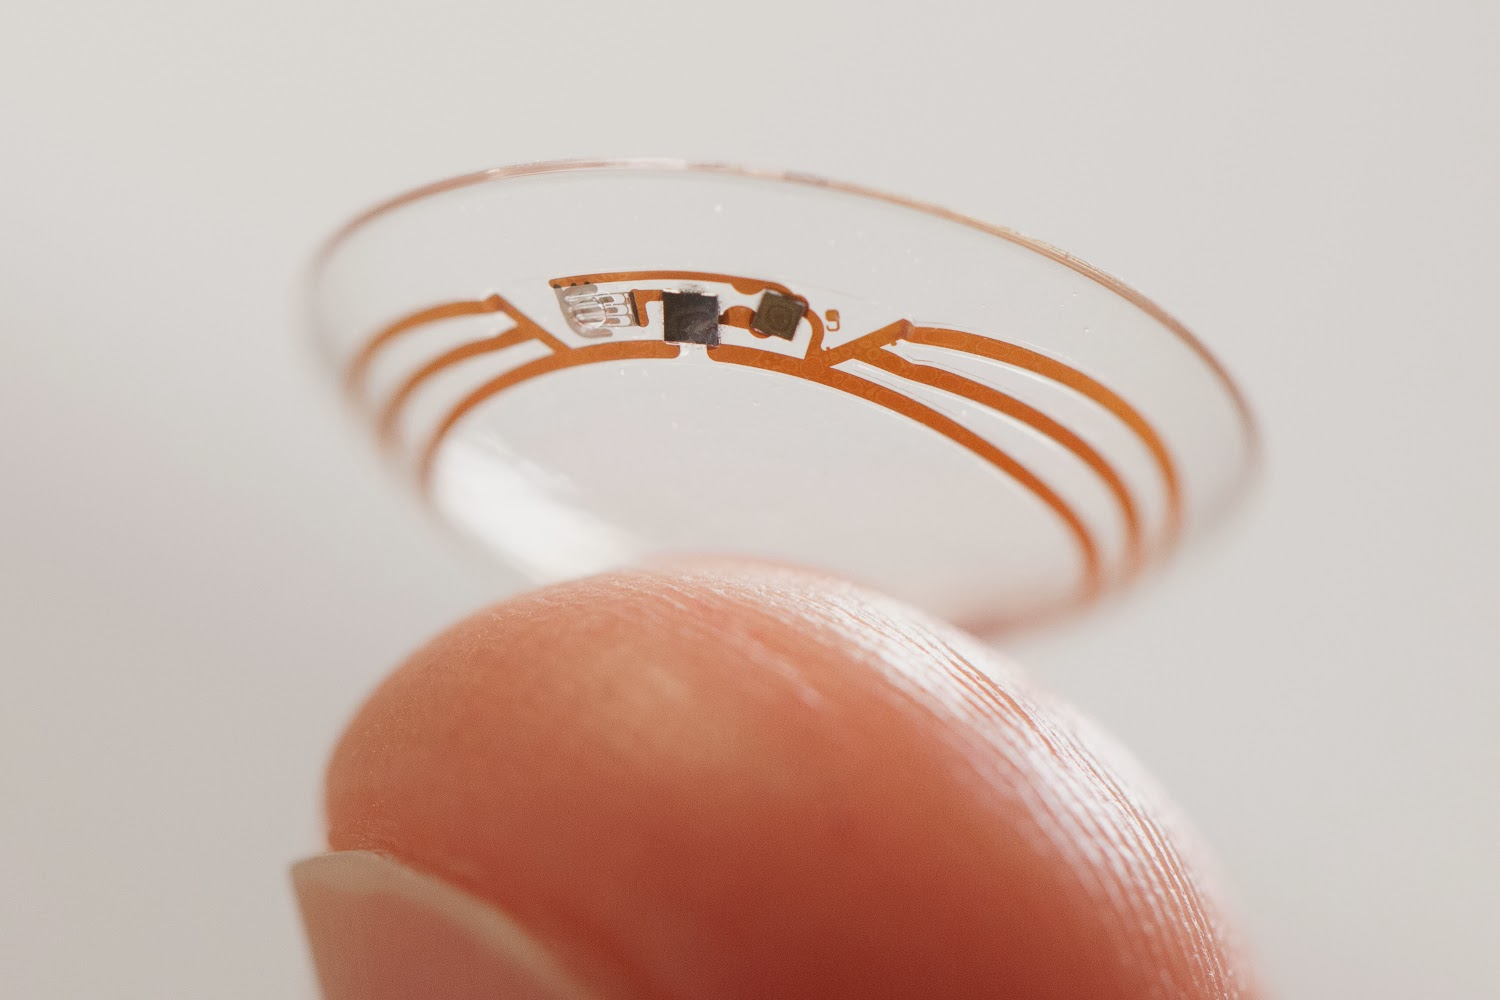 Google, Technology, Contact, Lens, Science, Health, Diabetes, Blood, Sugar, Levels, Project, Co-Founders, Brian Otis, Babak Parviz, Prototype, Wireless, Glucose, Sensor, FDA, Eye,